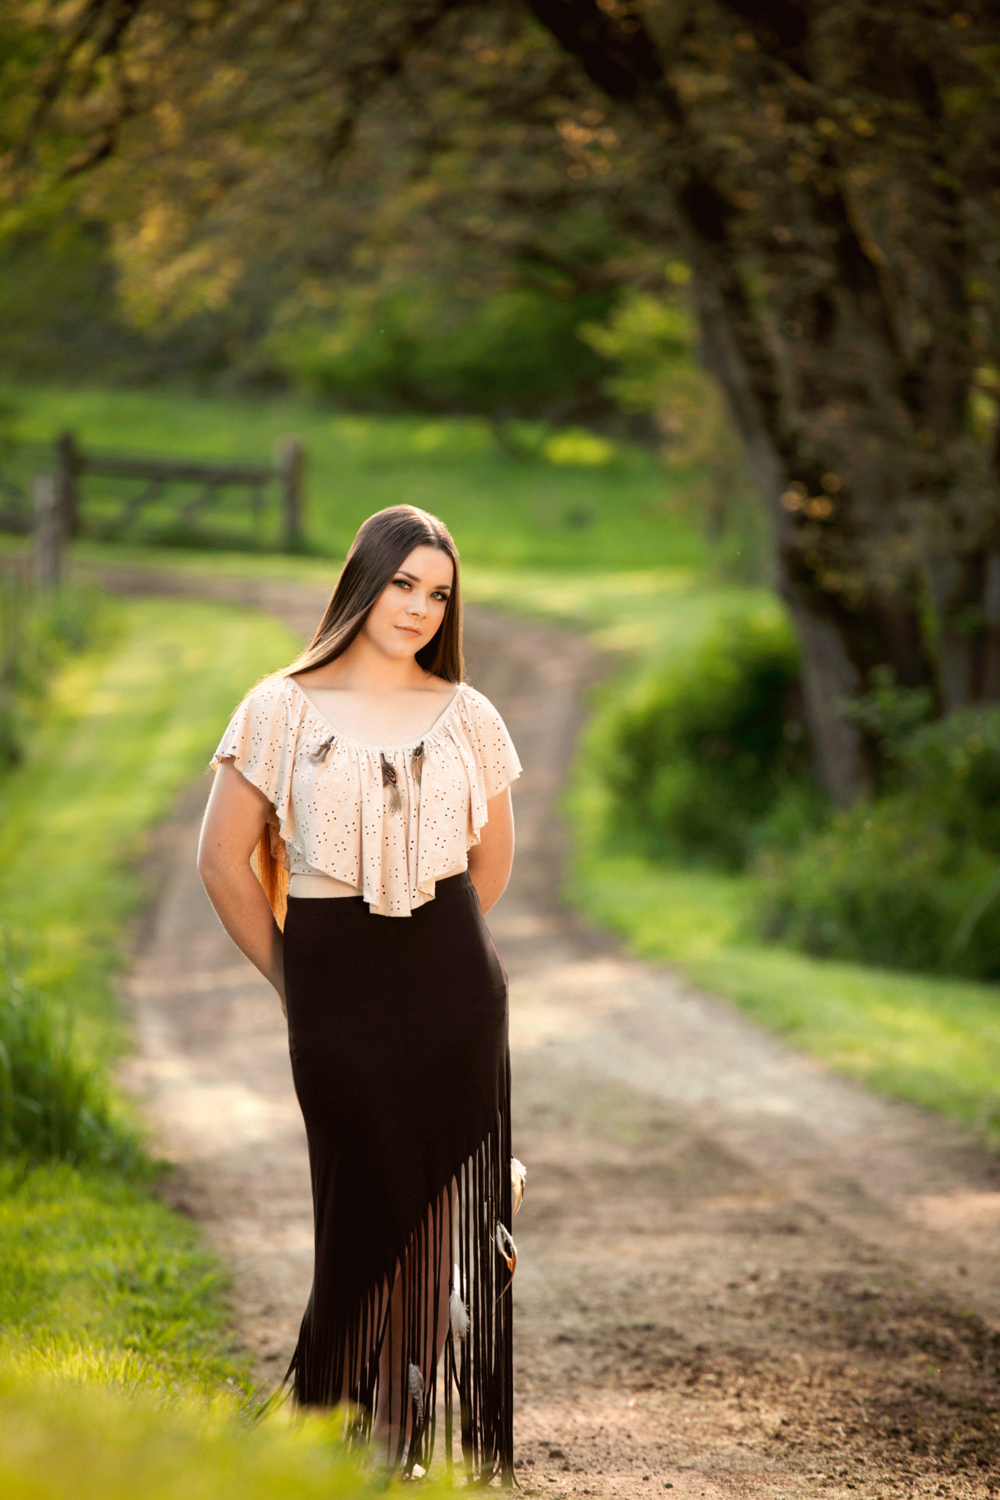 Madison-senior portraits-outdoors